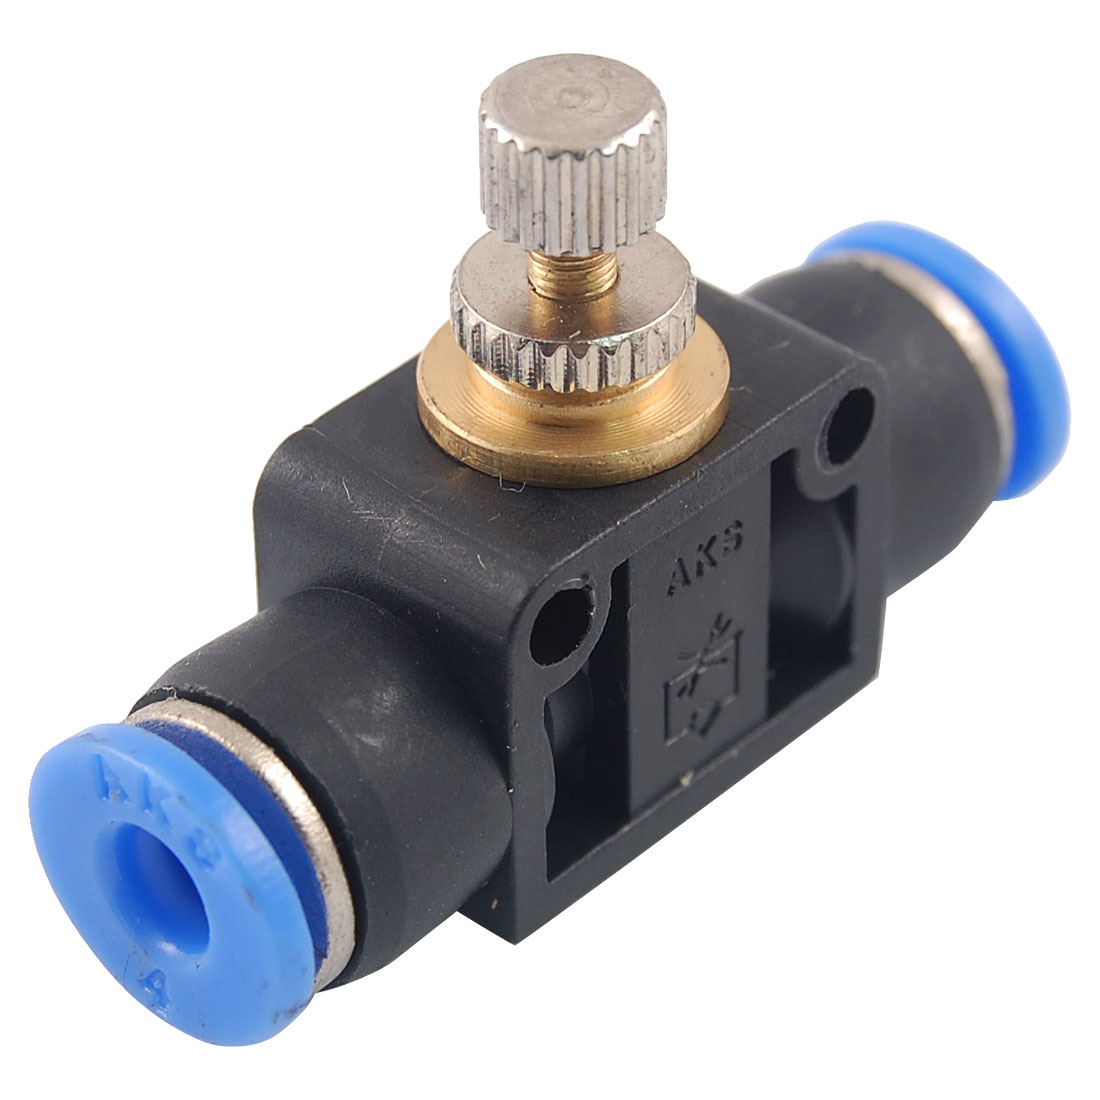 4mm to 4mm Push In Speed Controller Pneumatic Air Valve